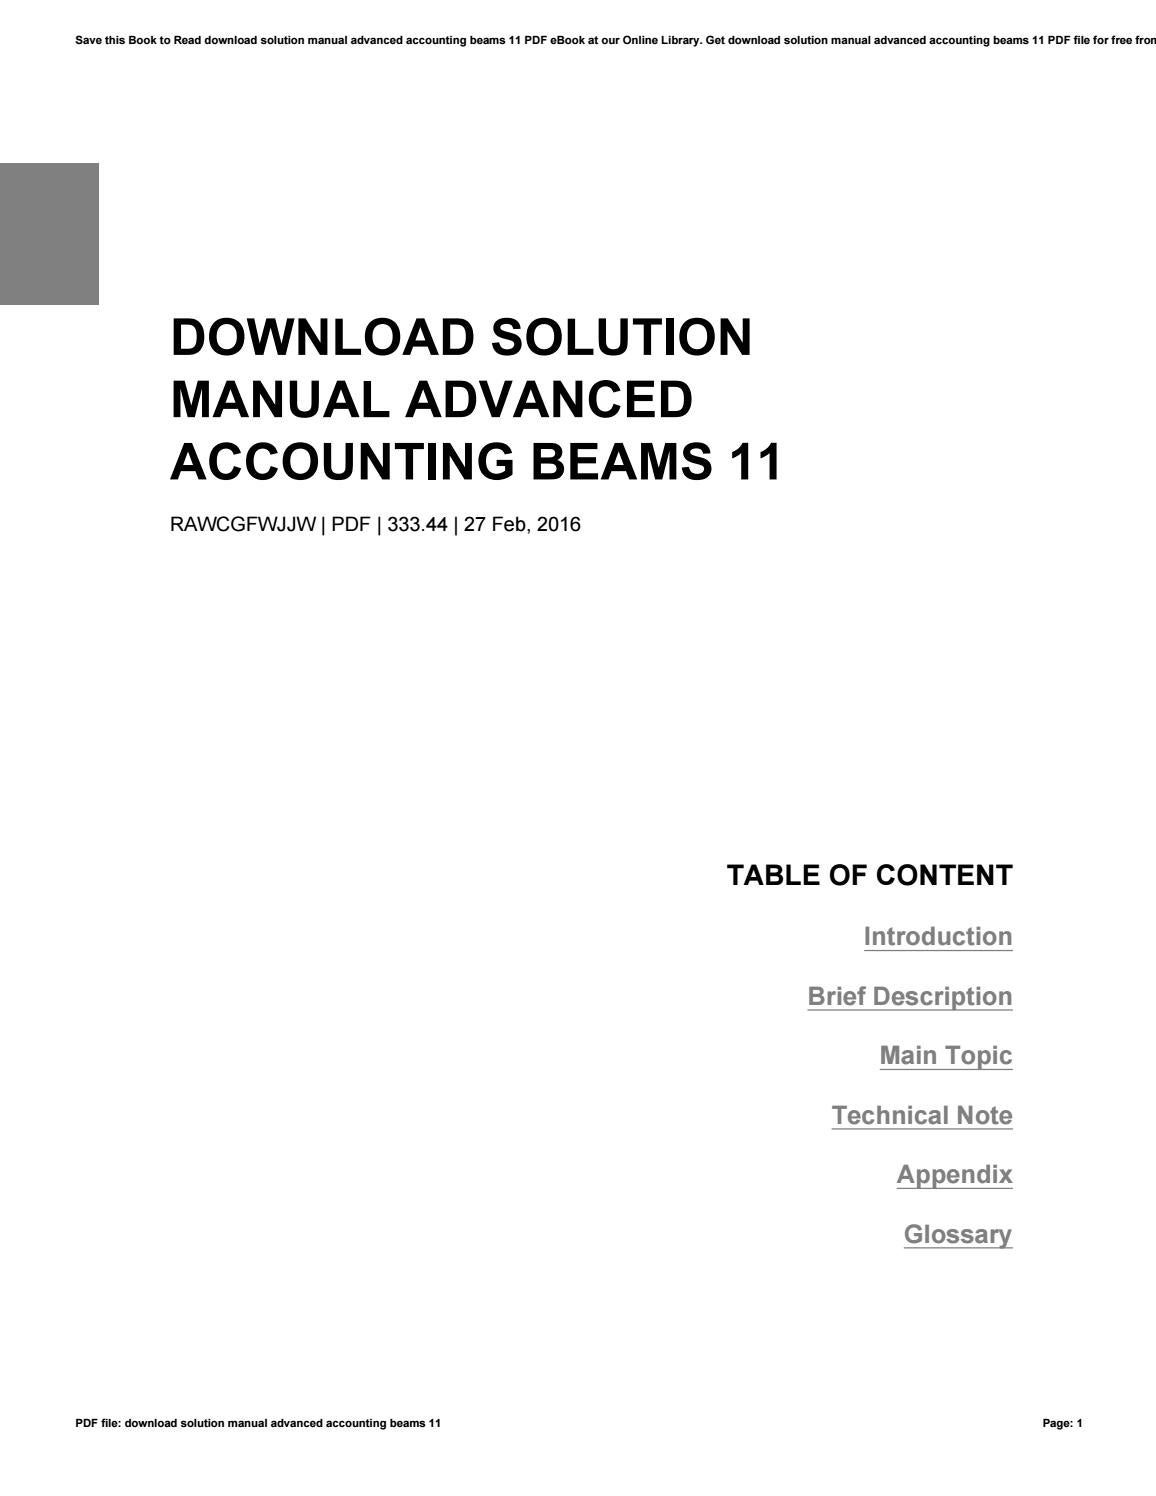 Download solution manual advanced accounting beams 11 by